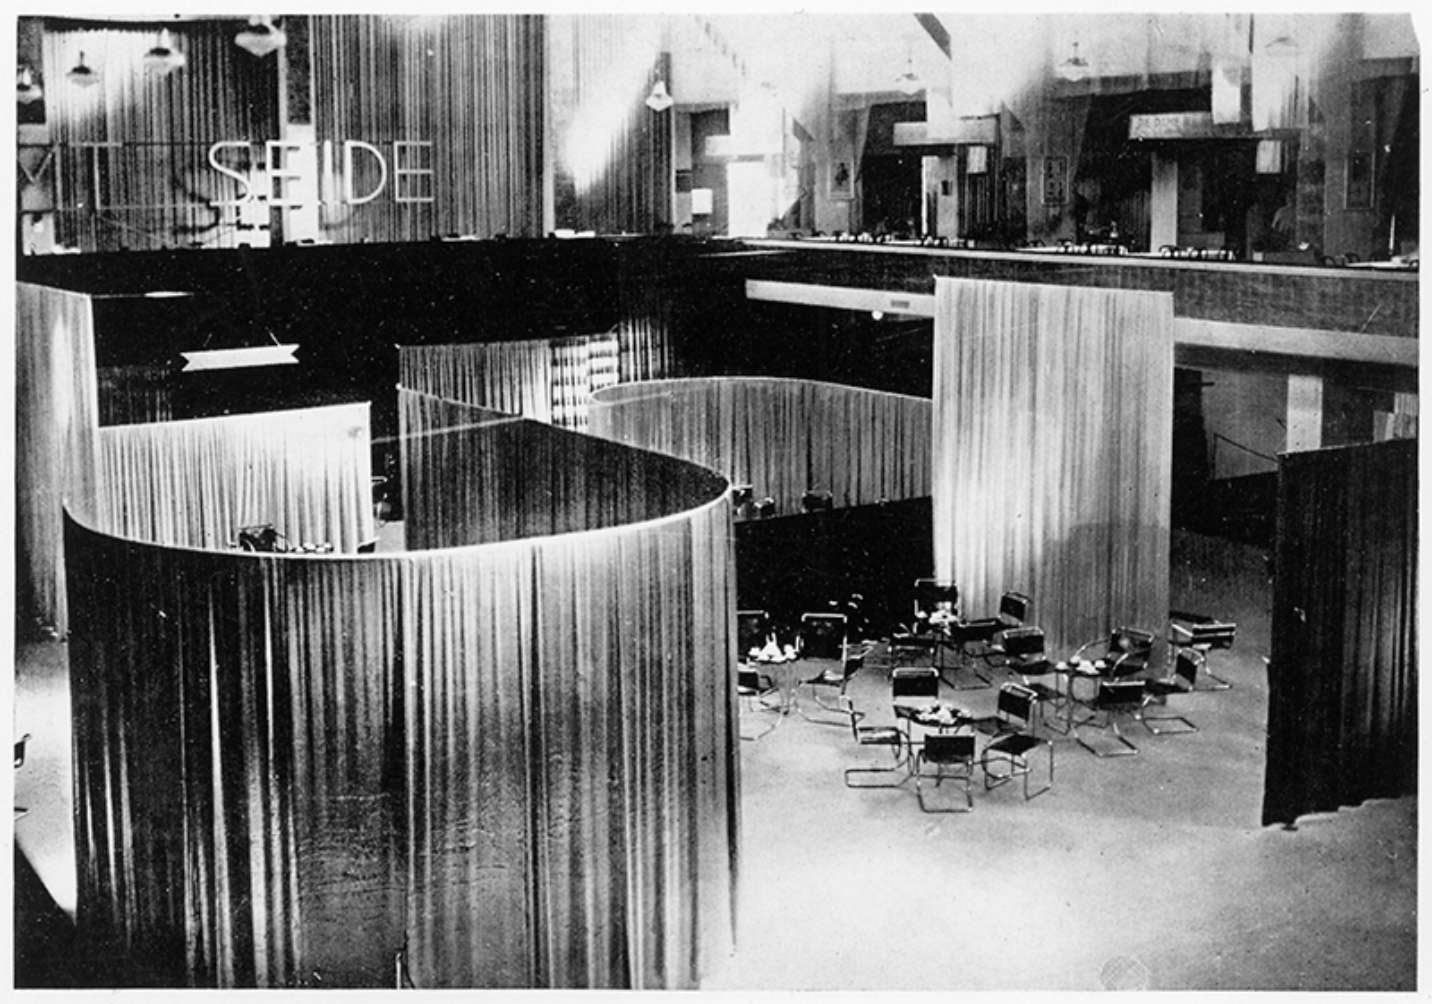 Caf Samt Seide By Ludwig Mies Van Der Rohe And Lilly Reich 1927 Architecture Space